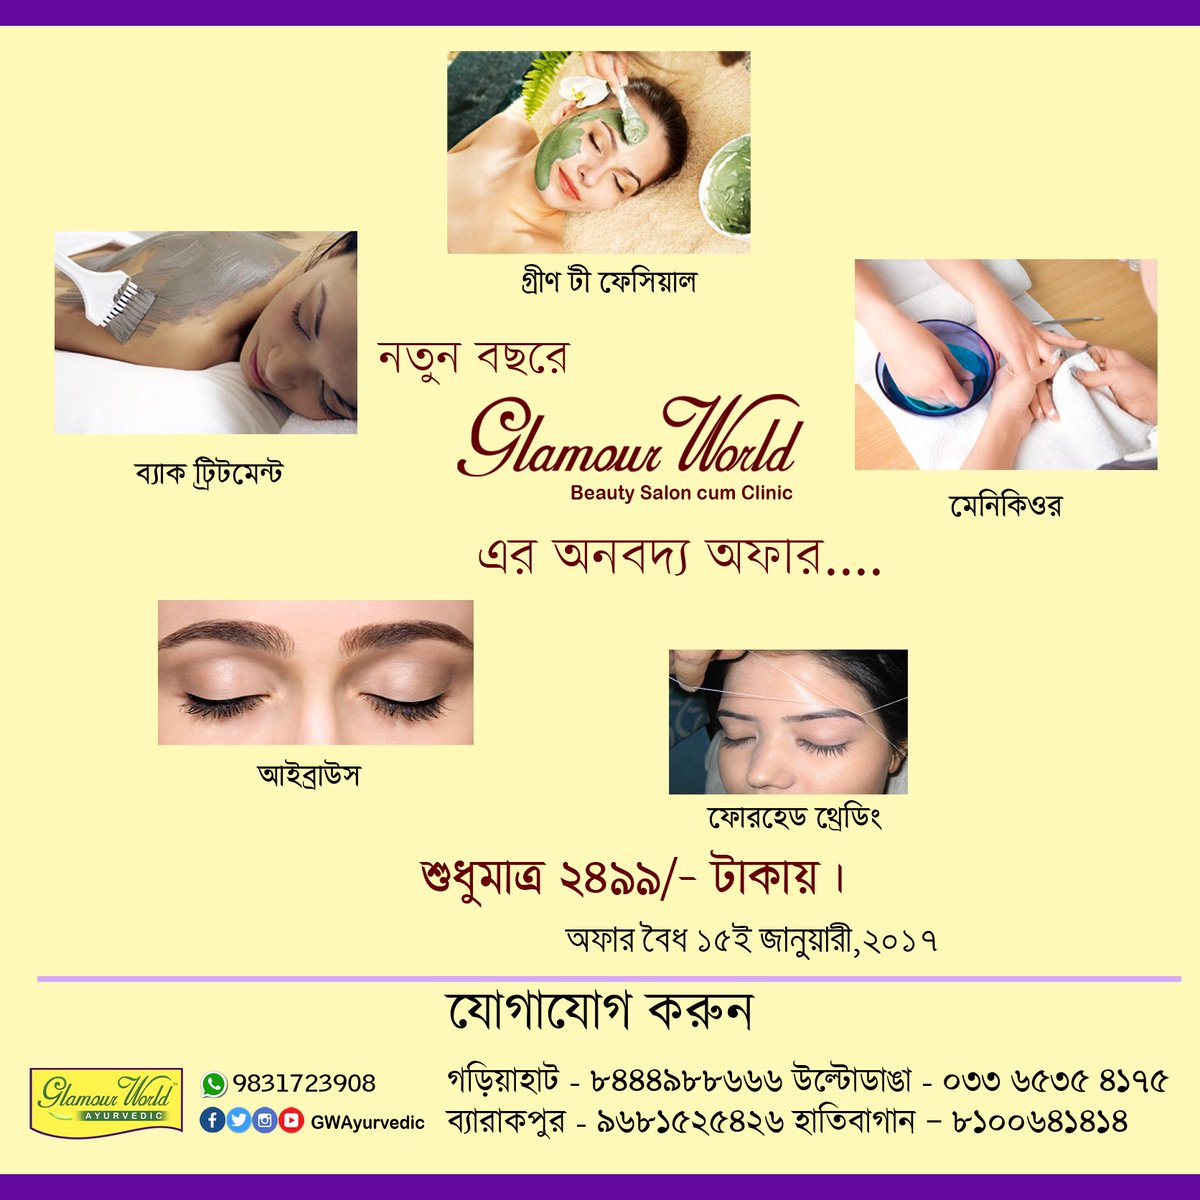 Glamour World On Twitter Avail The Exclusive Limitedoffer To Make Yourself More Maintained Attractive Gifted By Glamourworld Beautysalons Cum